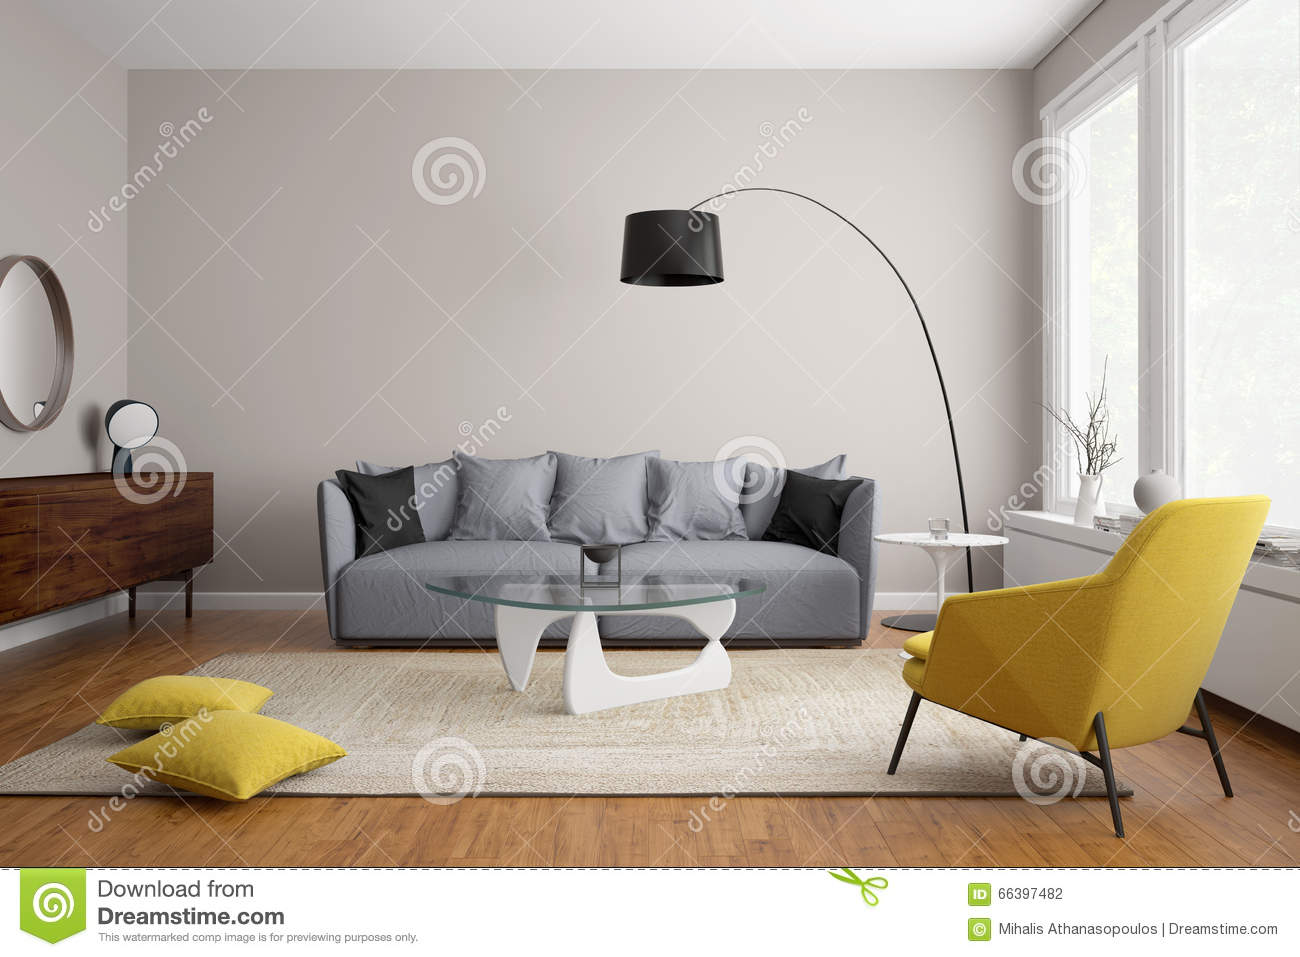 scandinavian living room furniture small decorating ideas for indian homes modern with grey sofa stock illustration